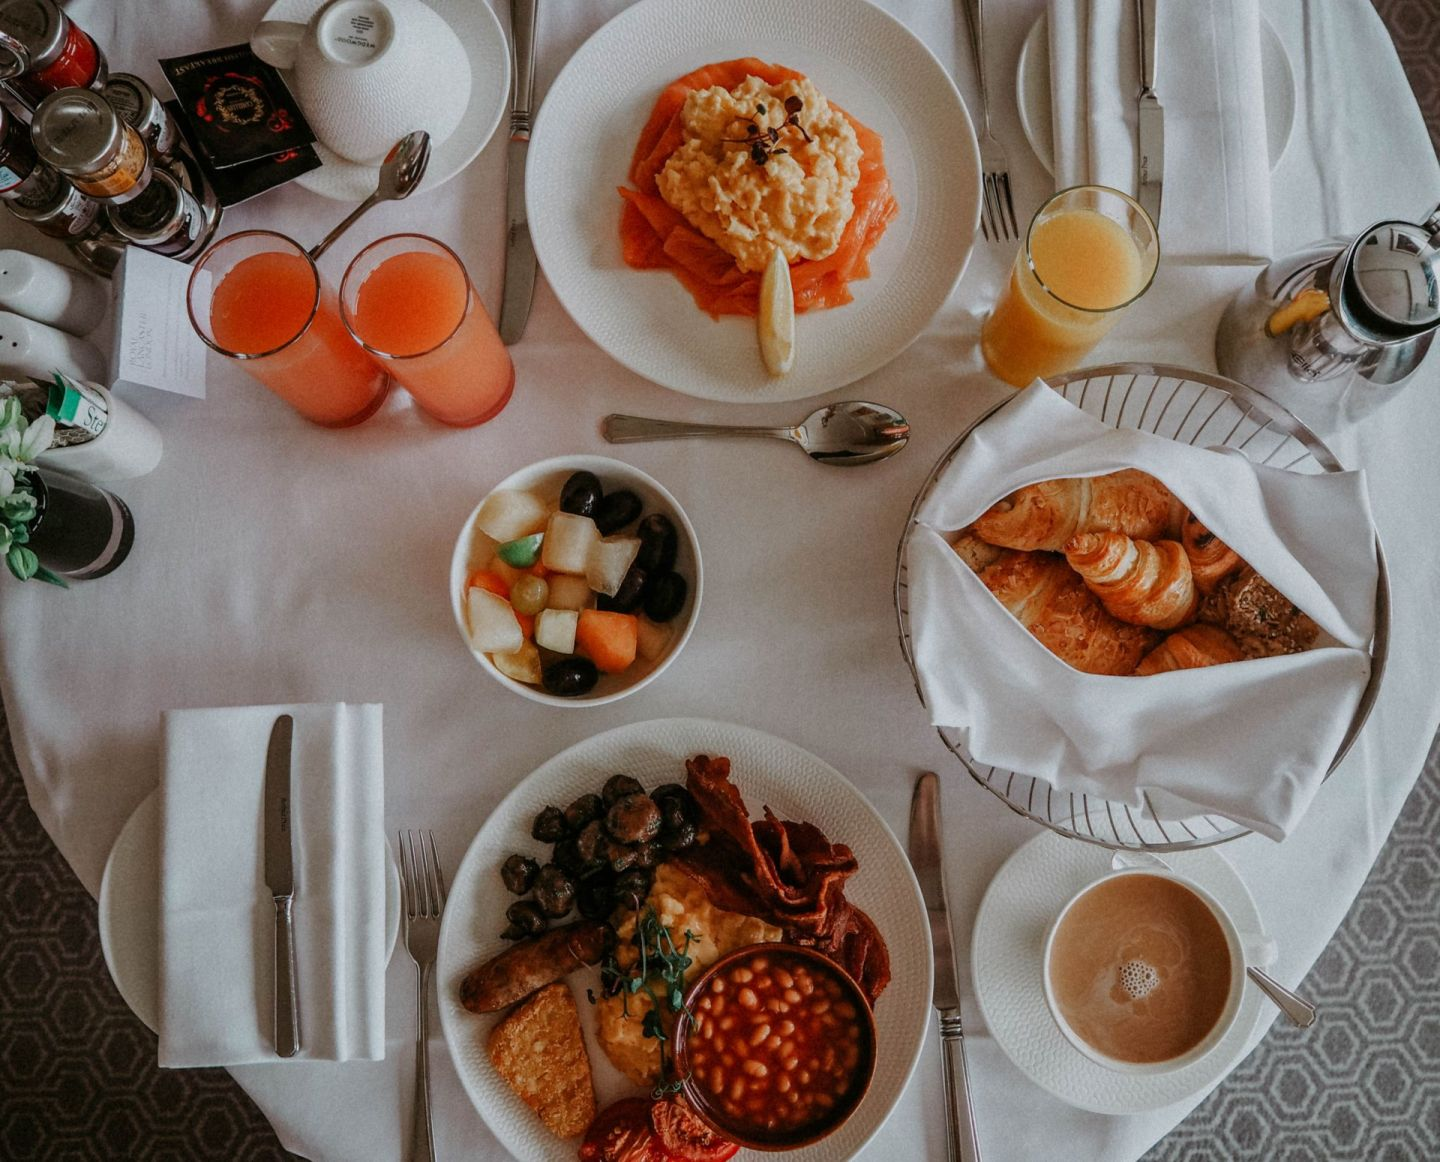 Royal Lancaster Hotel London Kate Winney Breakfast Room Service